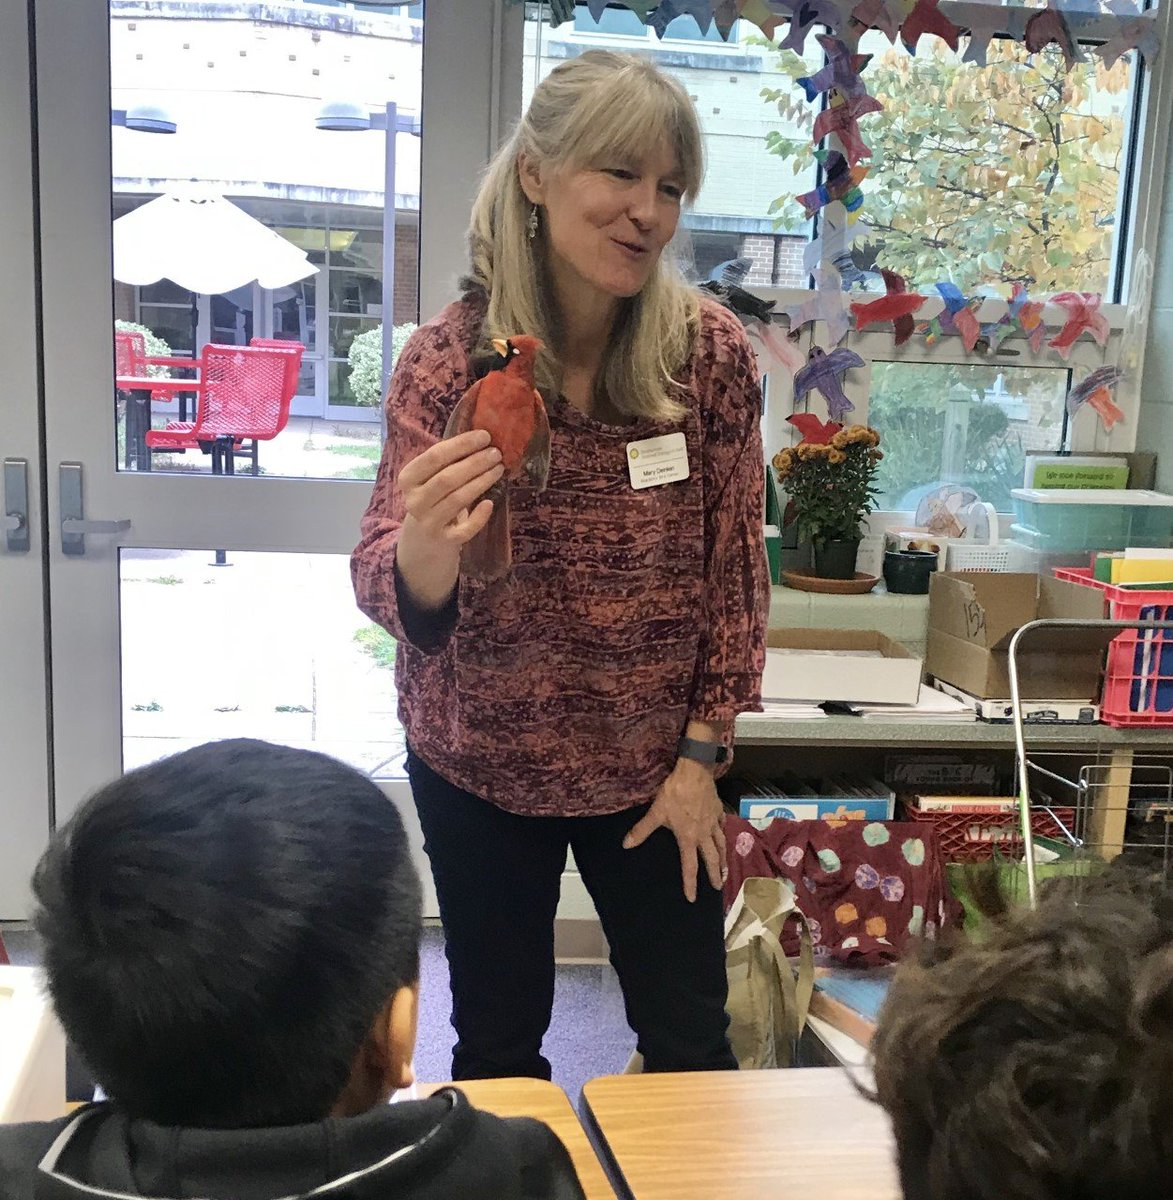 Mary Deinlein from the Smithsonian Migratory Bird Center came to visit the Carlin Springs Flying Amigos after school club to share information, biofacts, resources and games about birds and the Bridging the Americas Program! <a target='_blank' href='http://twitter.com/SmithsonianEdu'>@SmithsonianEdu</a> <a target='_blank' href='http://search.twitter.com/search?q=Cardinals1920'><a target='_blank' href='https://twitter.com/hashtag/Cardinals1920?src=hash'>#Cardinals1920</a></a> <a target='_blank' href='http://search.twitter.com/search?q=APSGetInvolved'><a target='_blank' href='https://twitter.com/hashtag/APSGetInvolved?src=hash'>#APSGetInvolved</a></a> <a target='_blank' href='https://t.co/d0NNK0BxfU'>https://t.co/d0NNK0BxfU</a>